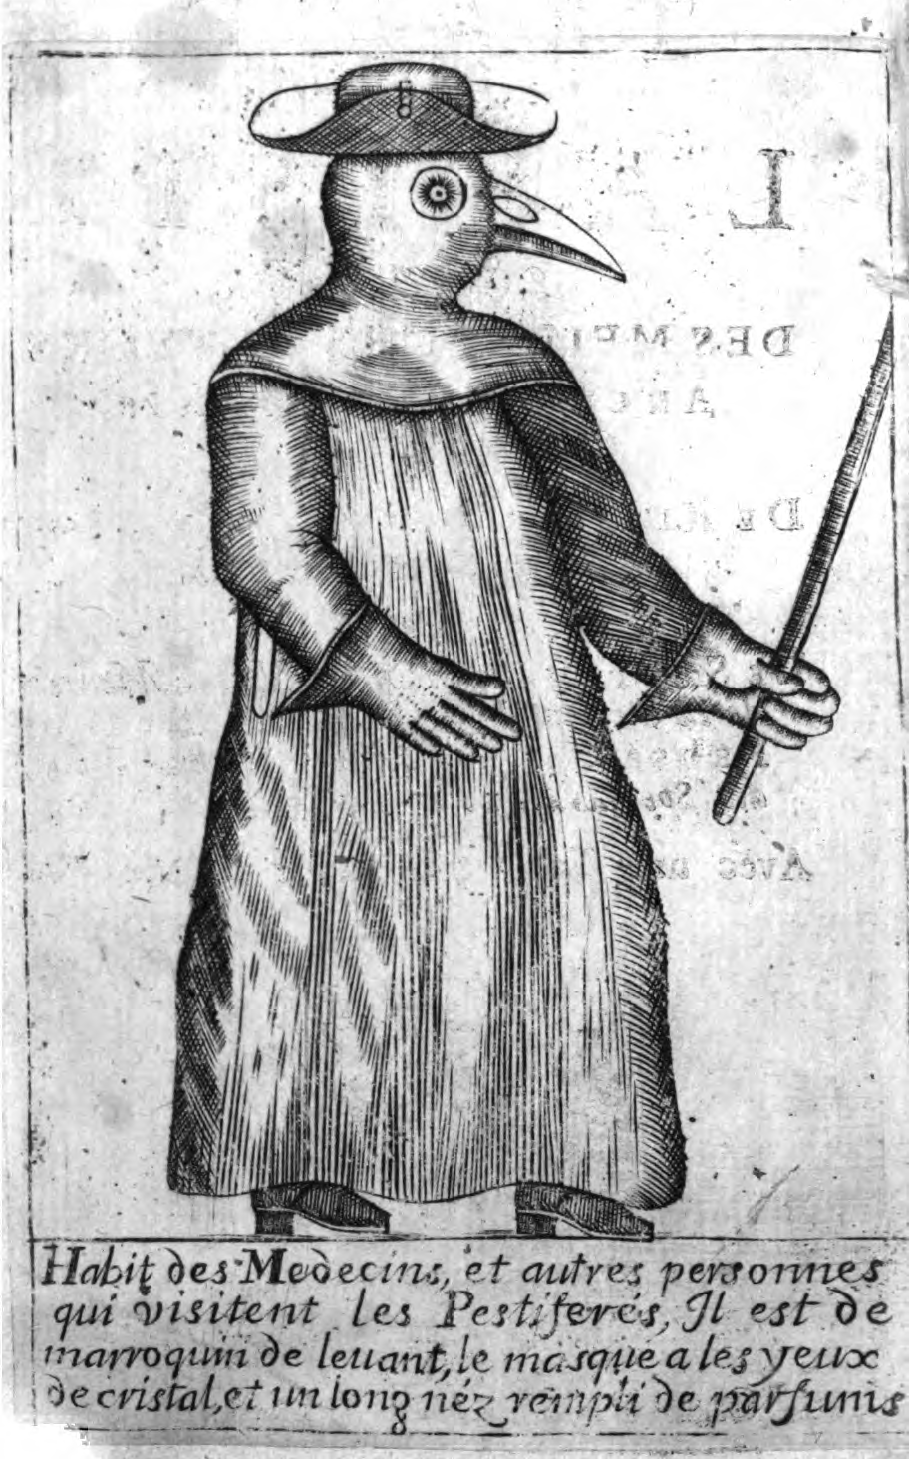 A_Plague_Doctor_–_from_Jean-Jacques_Manget%2C_Traité_de_la_peste_%281721%29%3B_University_of_Lausanne_version.png